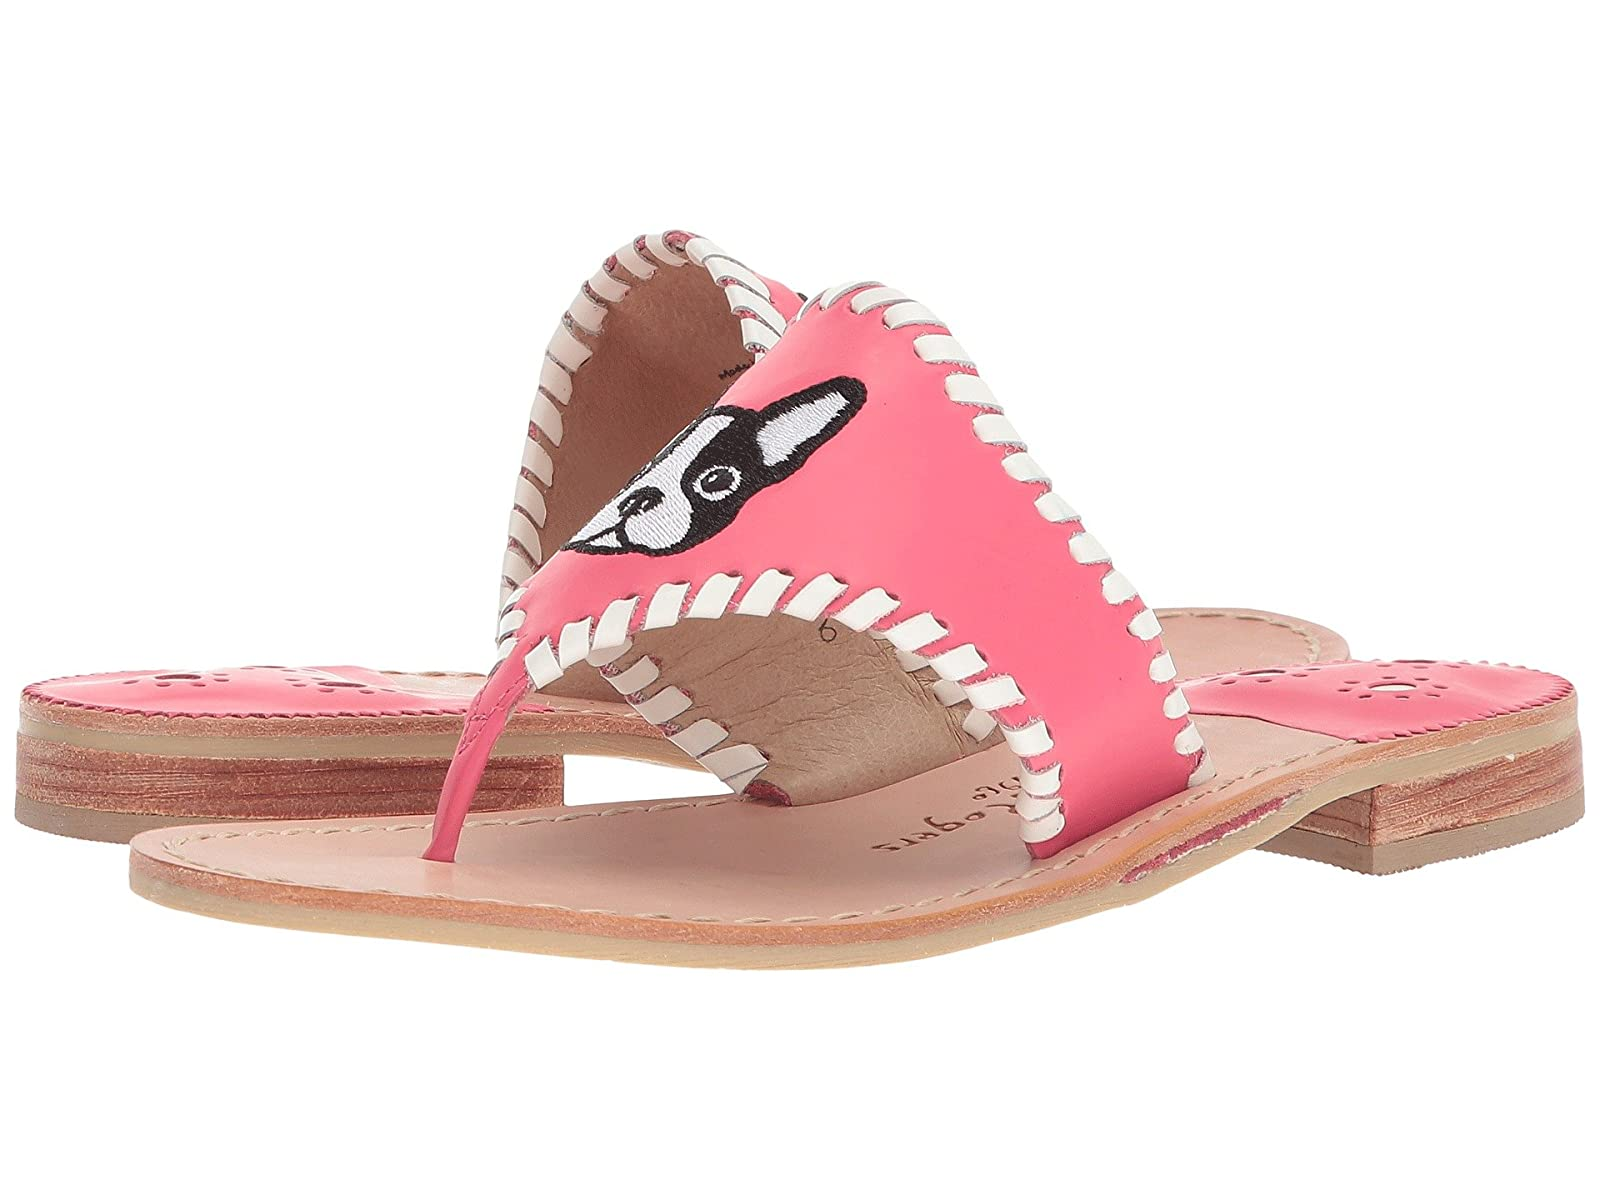 Jack Rogers FrenchieCheap and distinctive eye-catching shoes